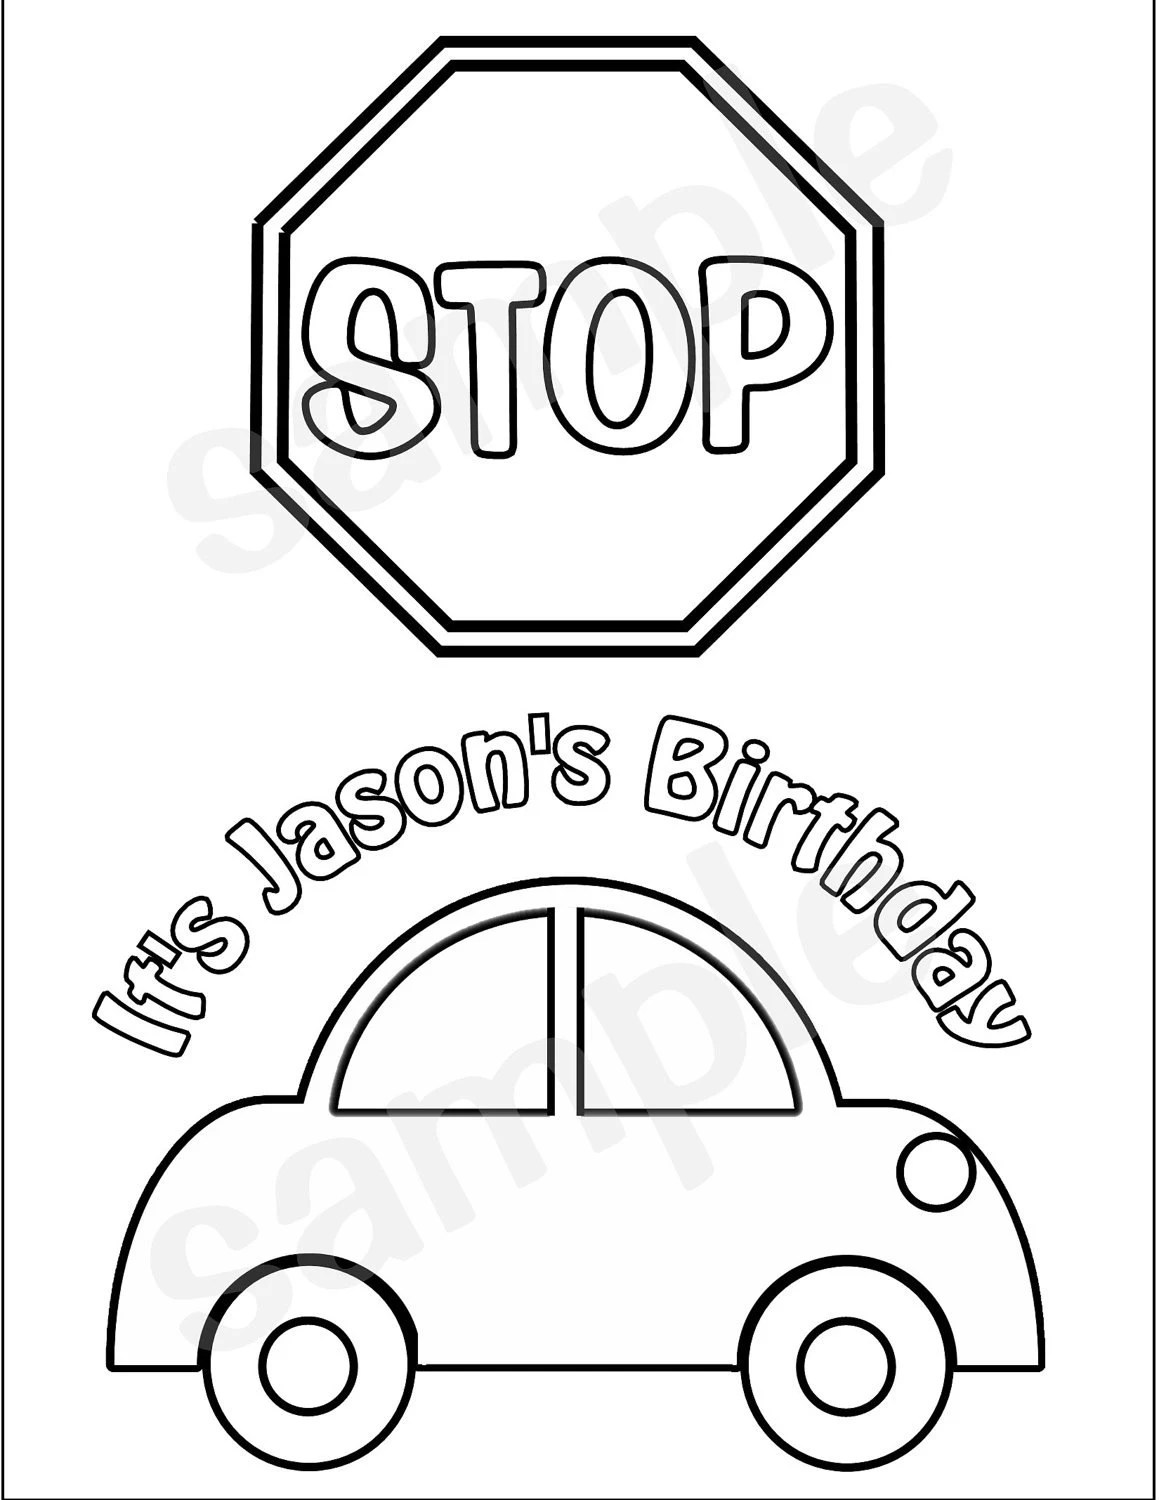 personalized printable transportation stop sign by sugarpiestudio